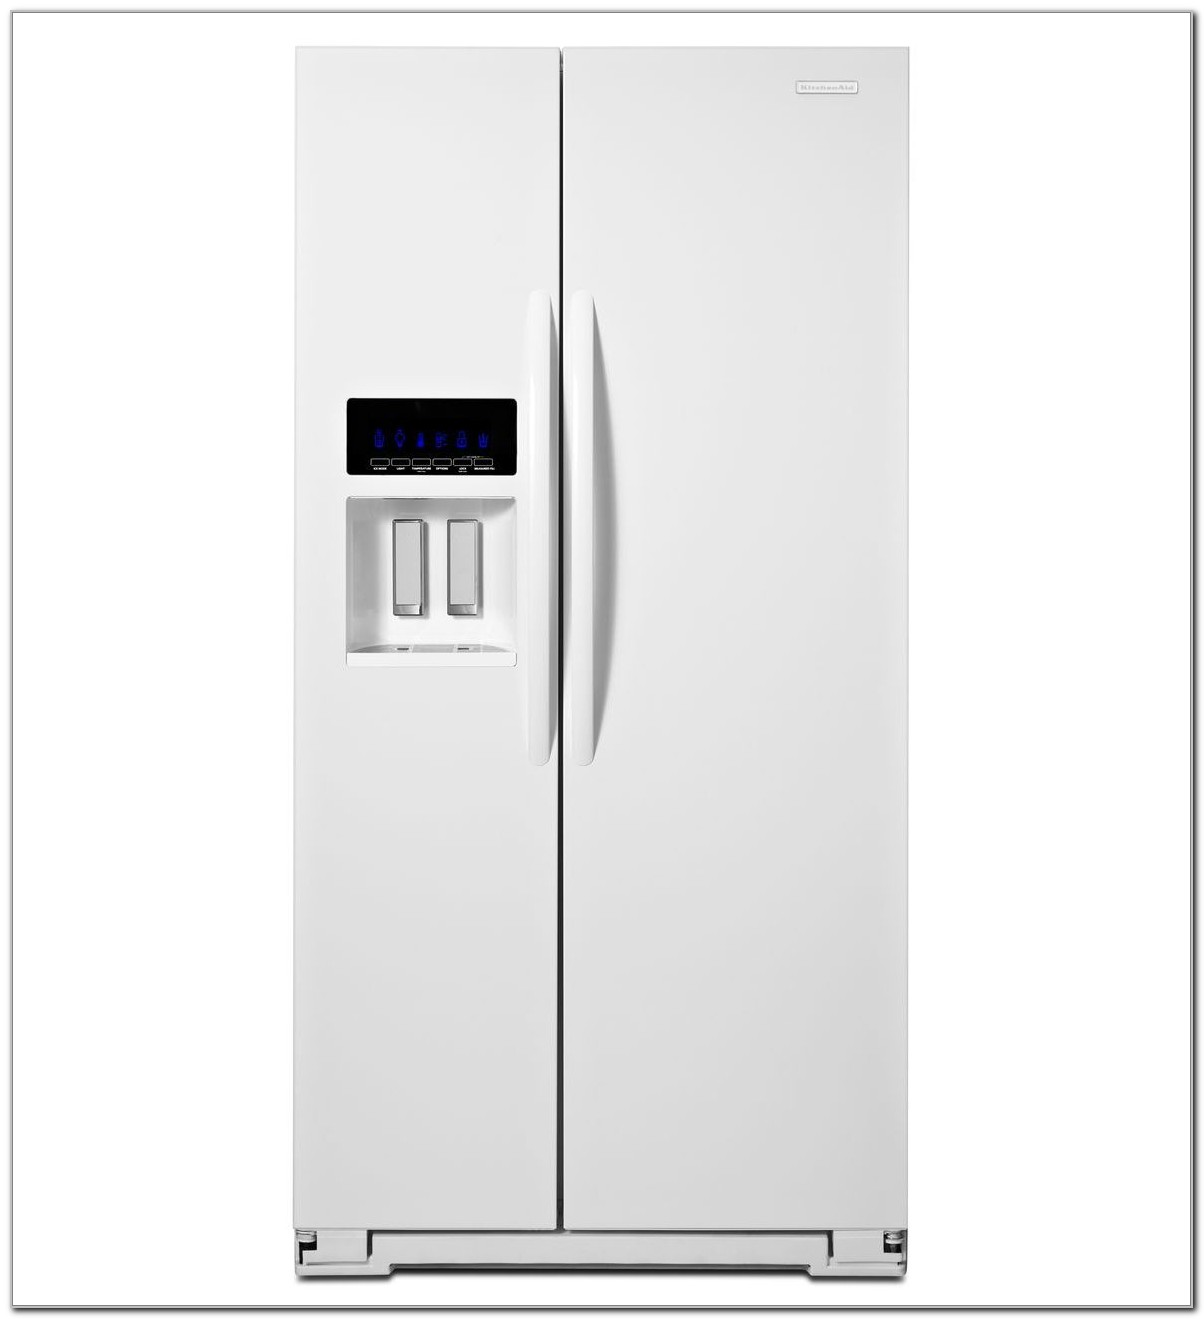 Kitchenaid Counter Depth Refrigerator White